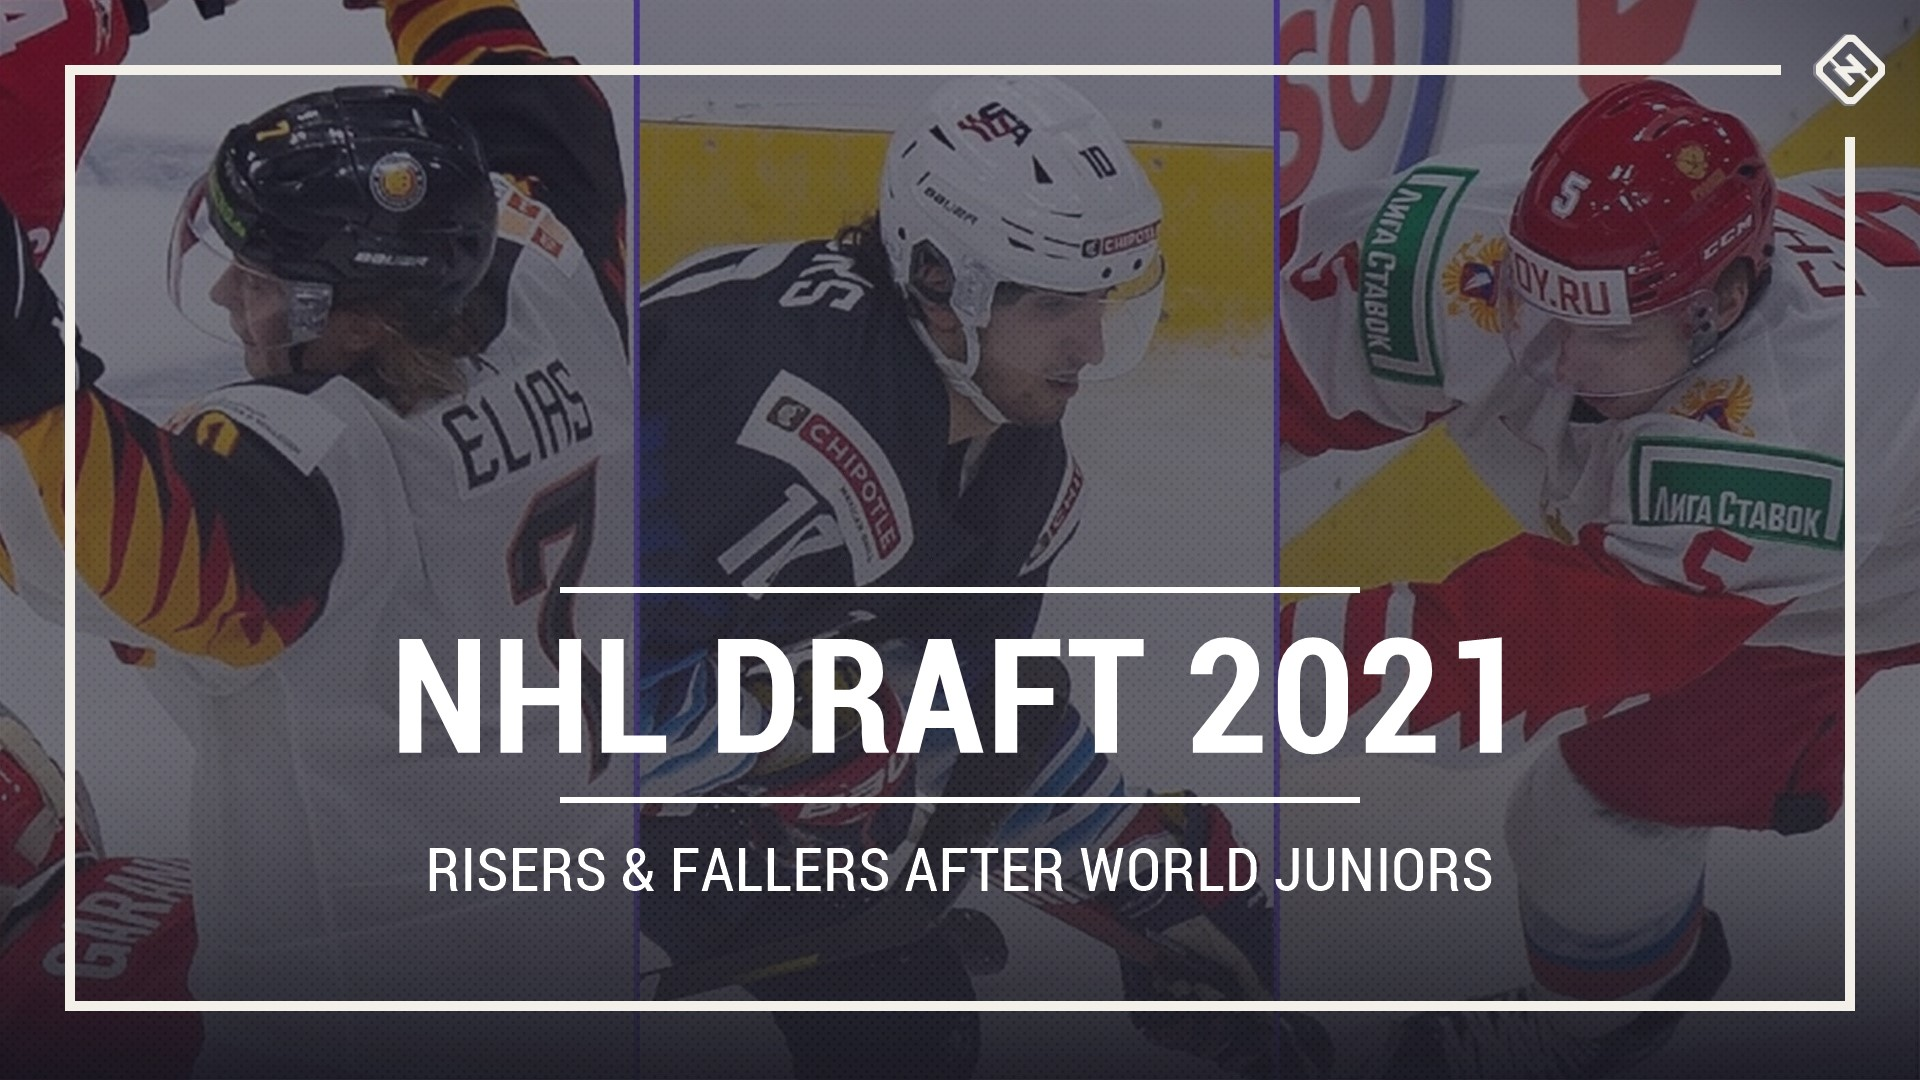 Nhl-draft-010821-getty-ftrjpeg_11obiwutexs6l1wj3z7cb7fpl6